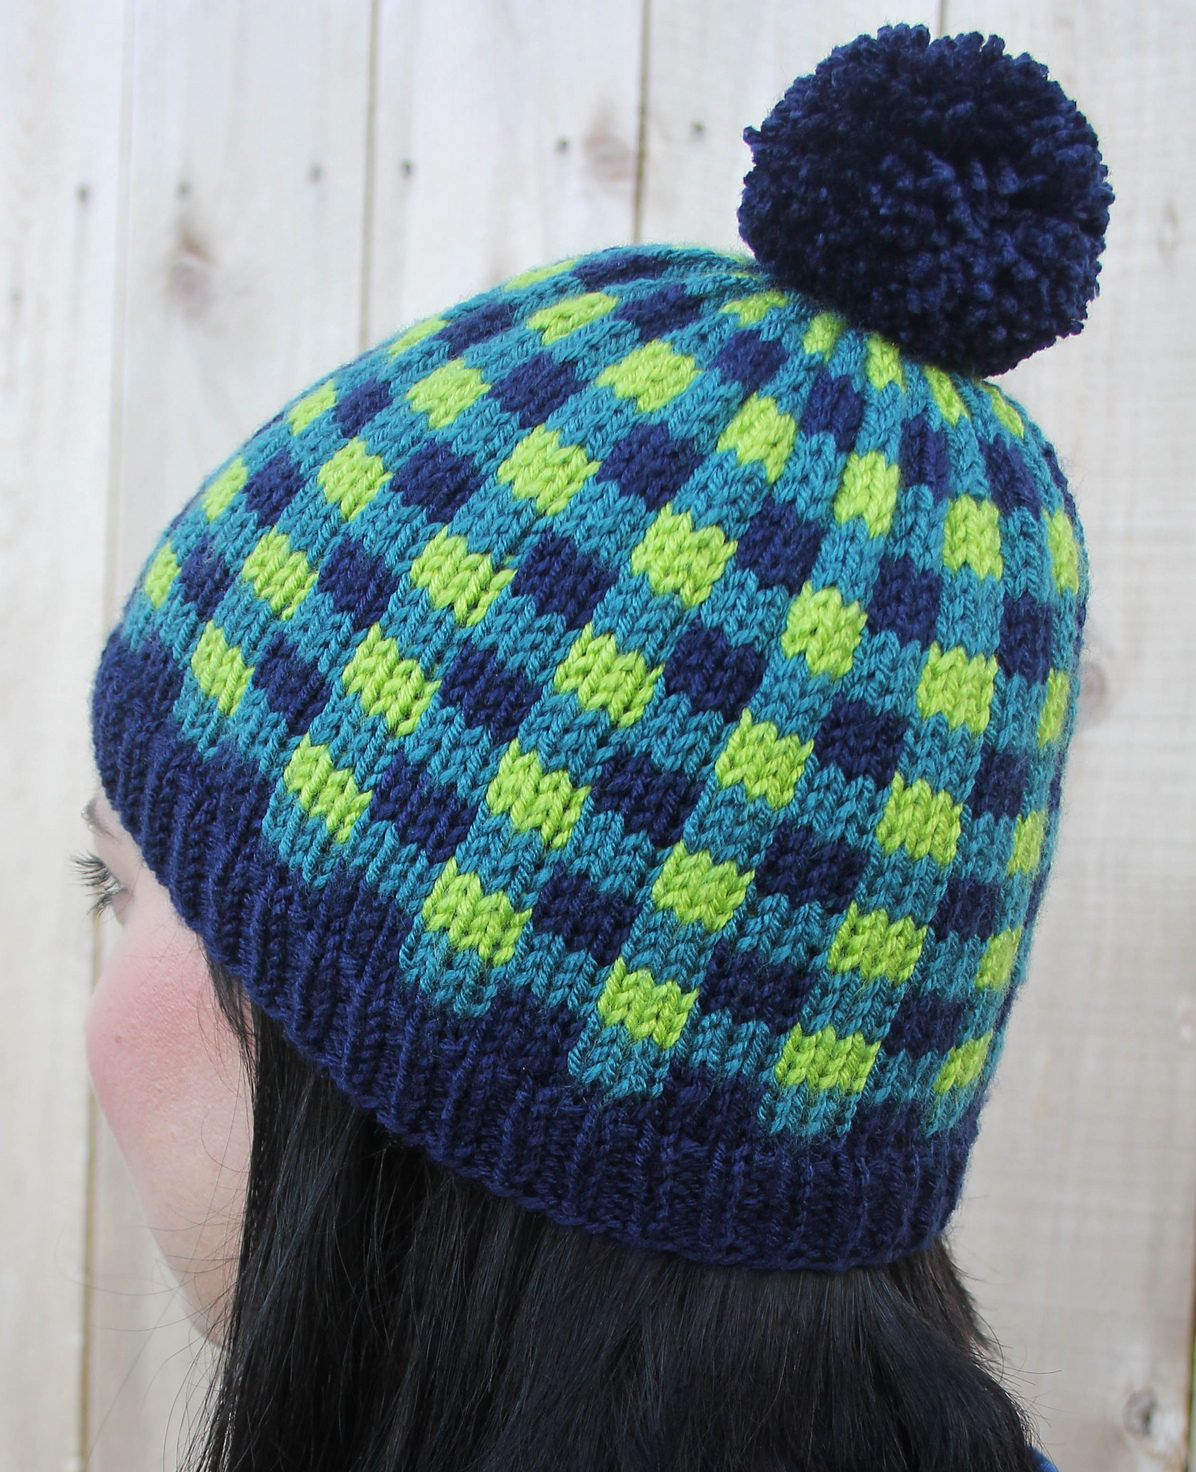 79bf1f4a493 Free Knitting Pattern for Cozy Plaid Hat - This pattern uses stranded  colorwork to produce a plaid design over the entire hat. Designed by Amber  Armstrong